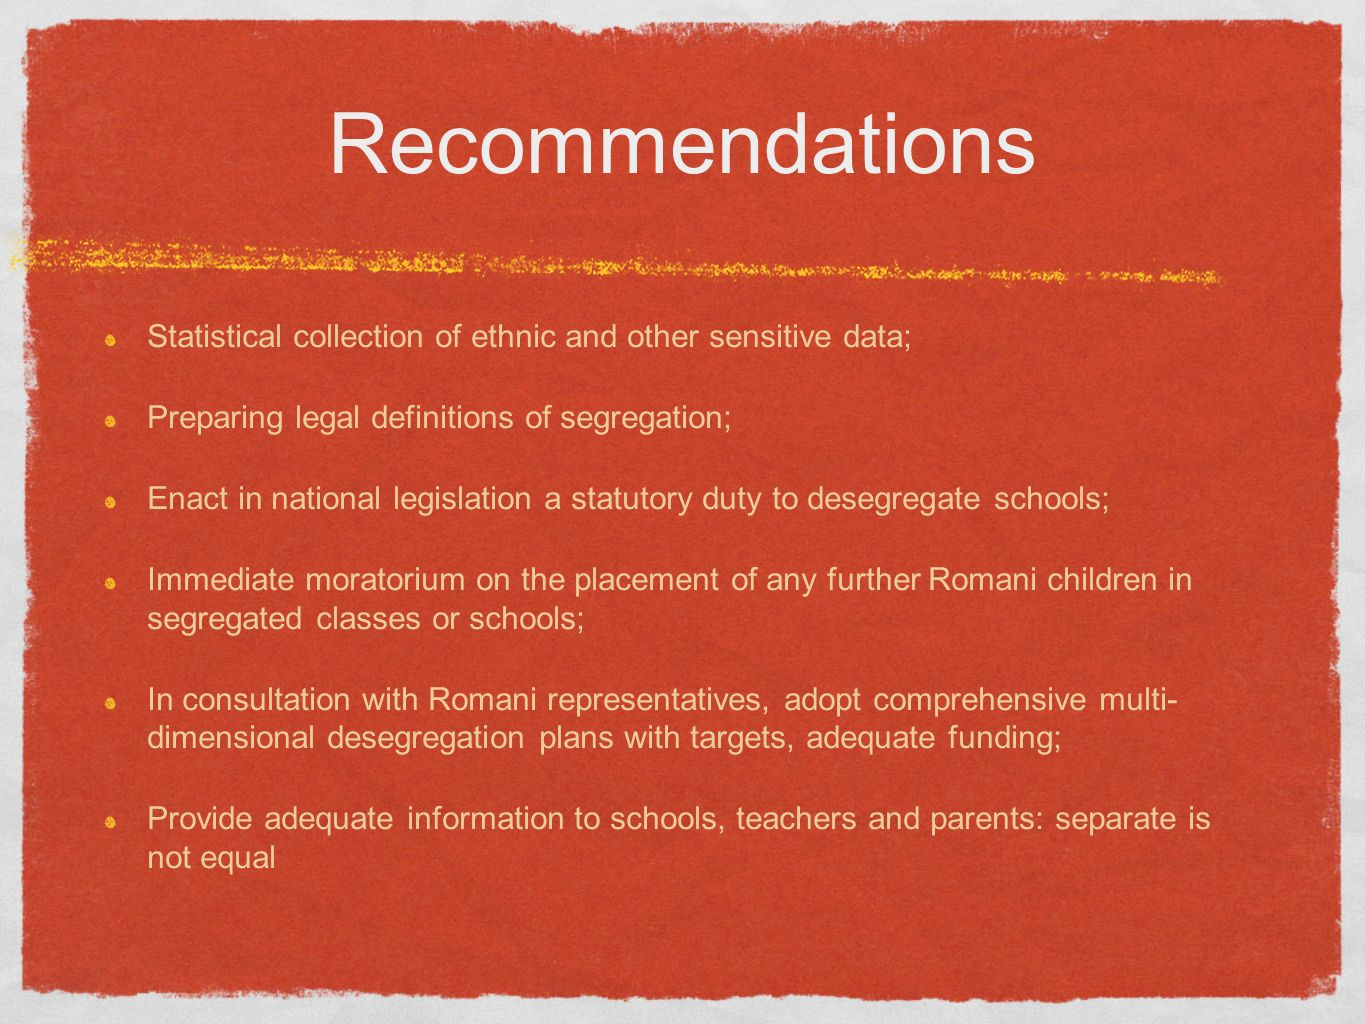 Recommendations Statistical collection of ethnic and other sensitive data; Preparing legal definitions of segregation; Enact in national legislation a statutory duty to desegregate schools; Immediate moratorium on the placement of any further Romani children in segregated classes or schools; In consultation with Romani representatives, adopt comprehensive multi- dimensional desegregation plans with targets, adequate funding; Provide adequate information to schools, teachers and parents: separate is not equal